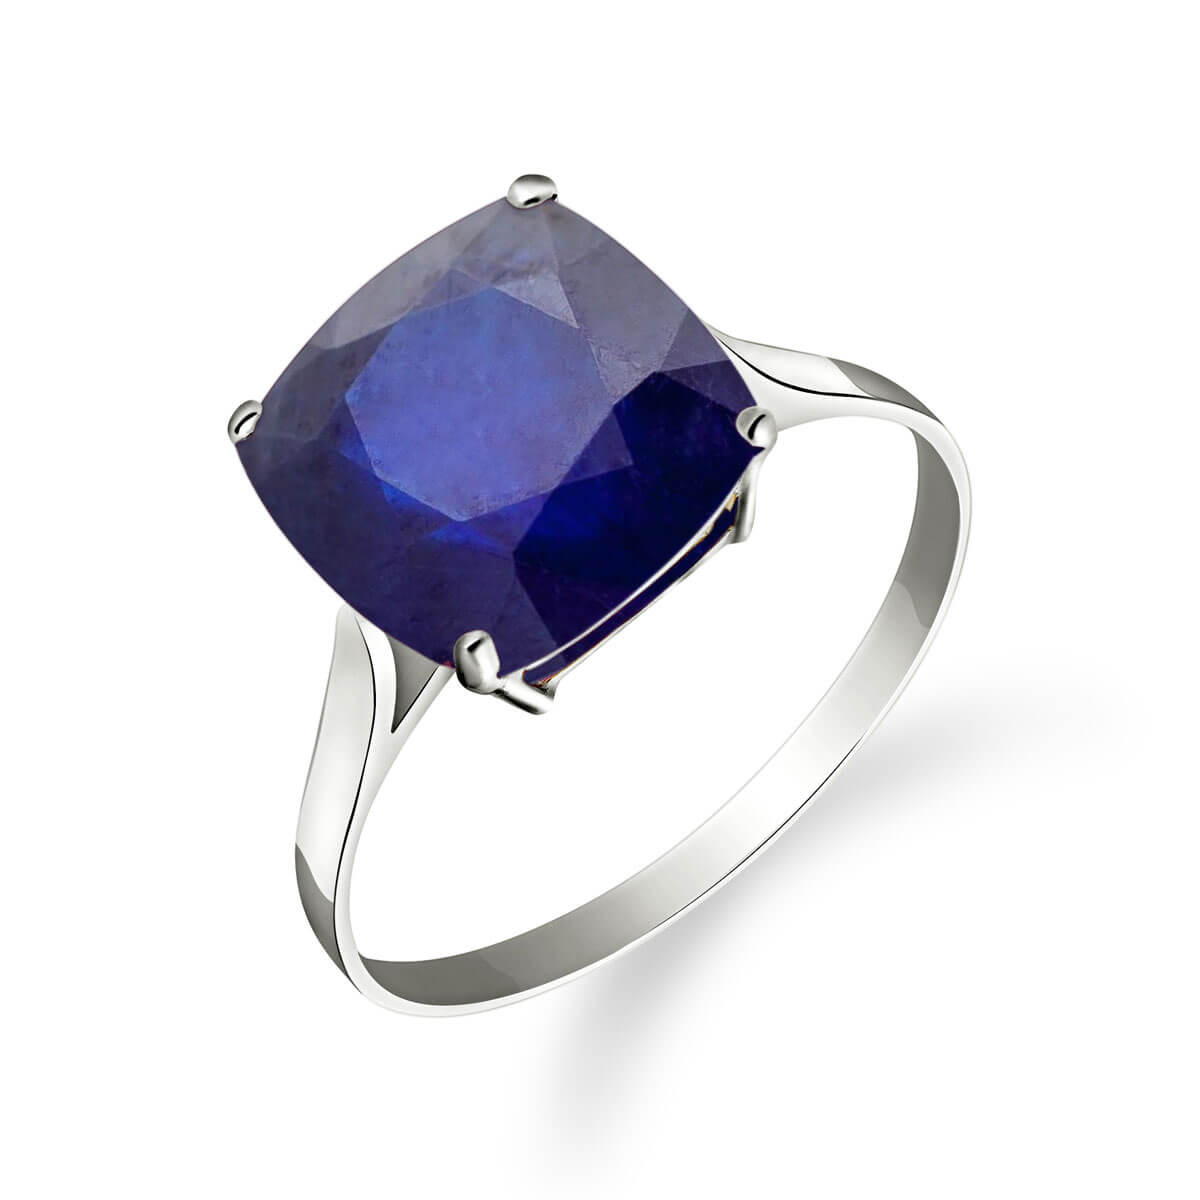 Sapphire Rococo Ring 4.83 ct in Sterling Silver